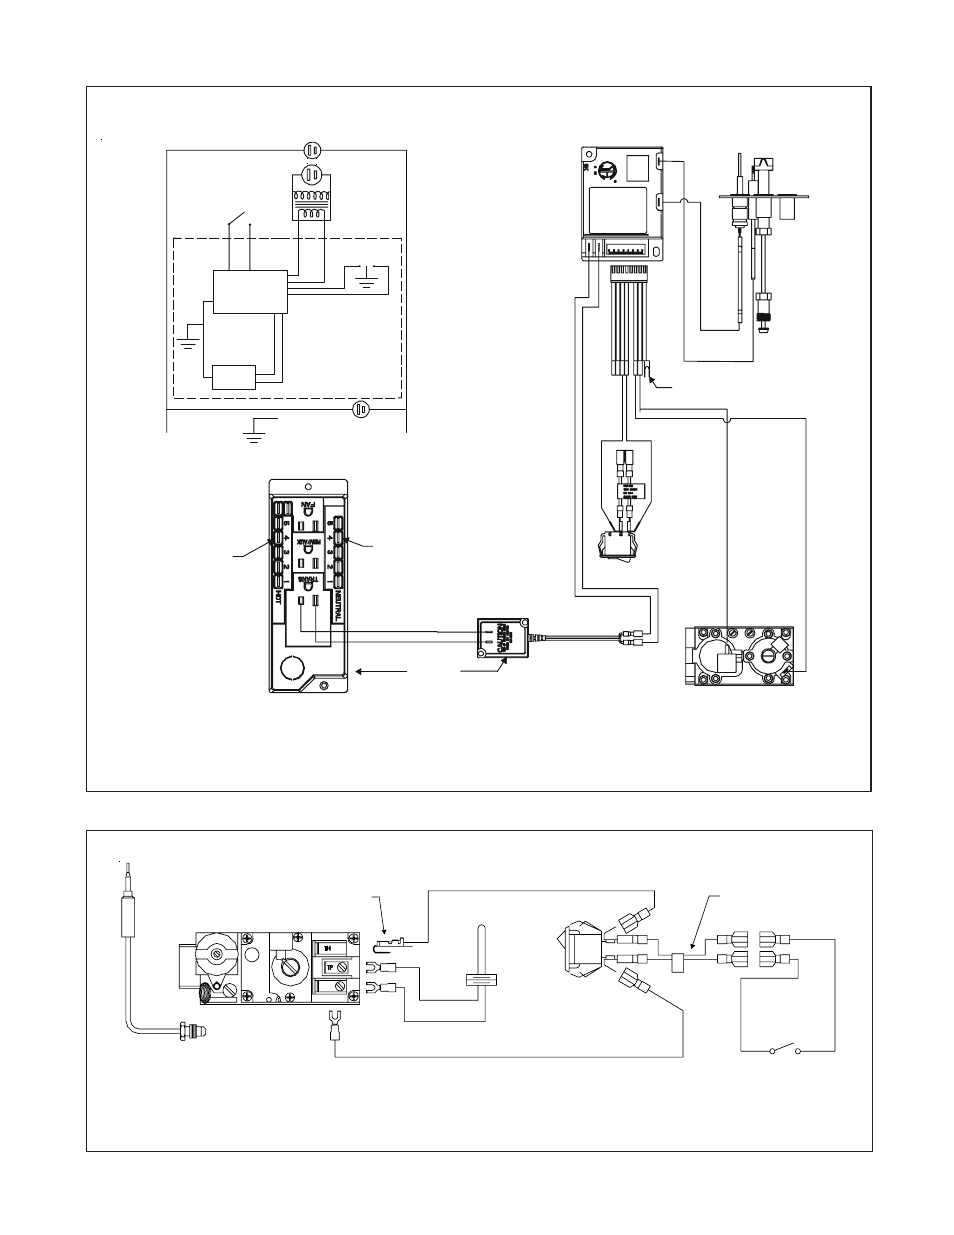 ignition wiring diagram smart